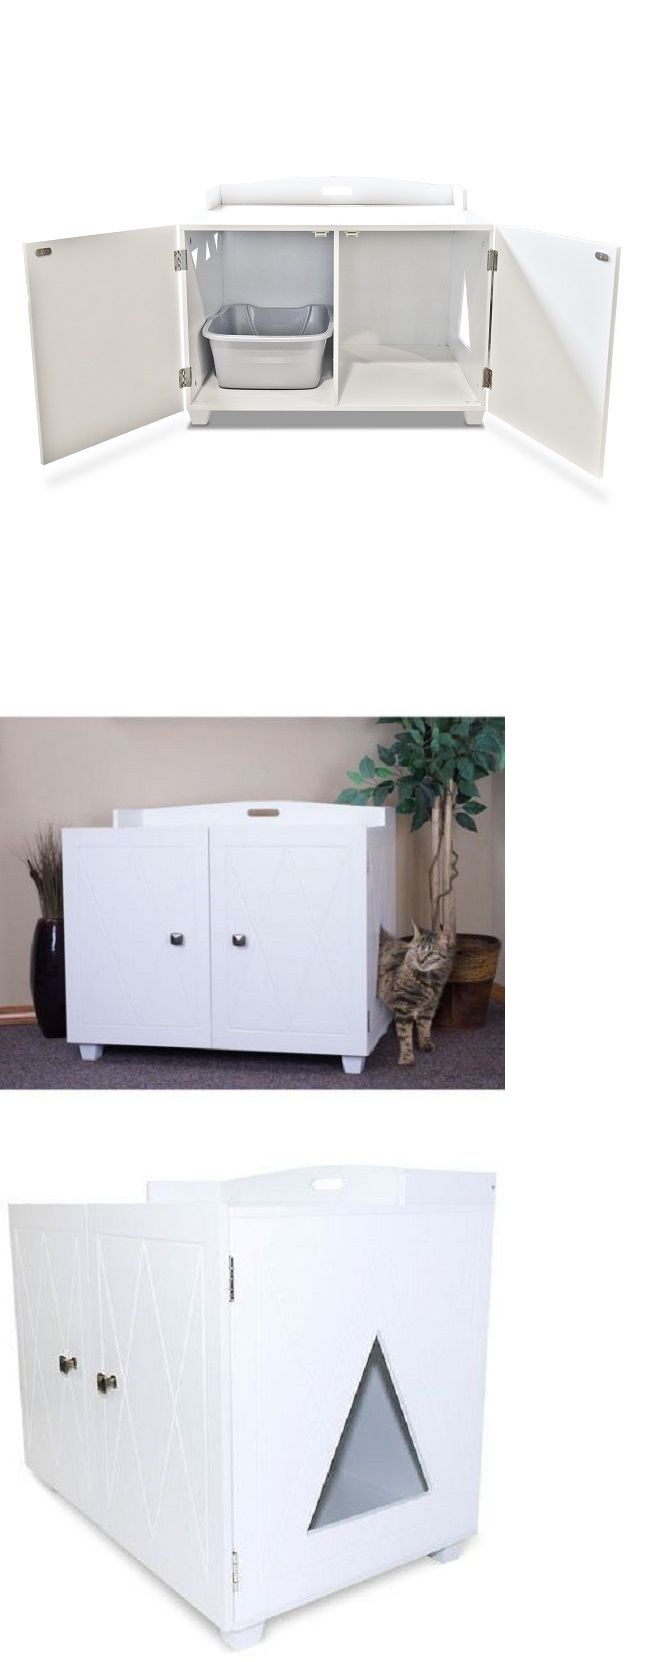 Litter Boxes 100411: Cat Litter Box Furniture Enclosed Covered Hidden Kitty  Boxes White Pet Bench